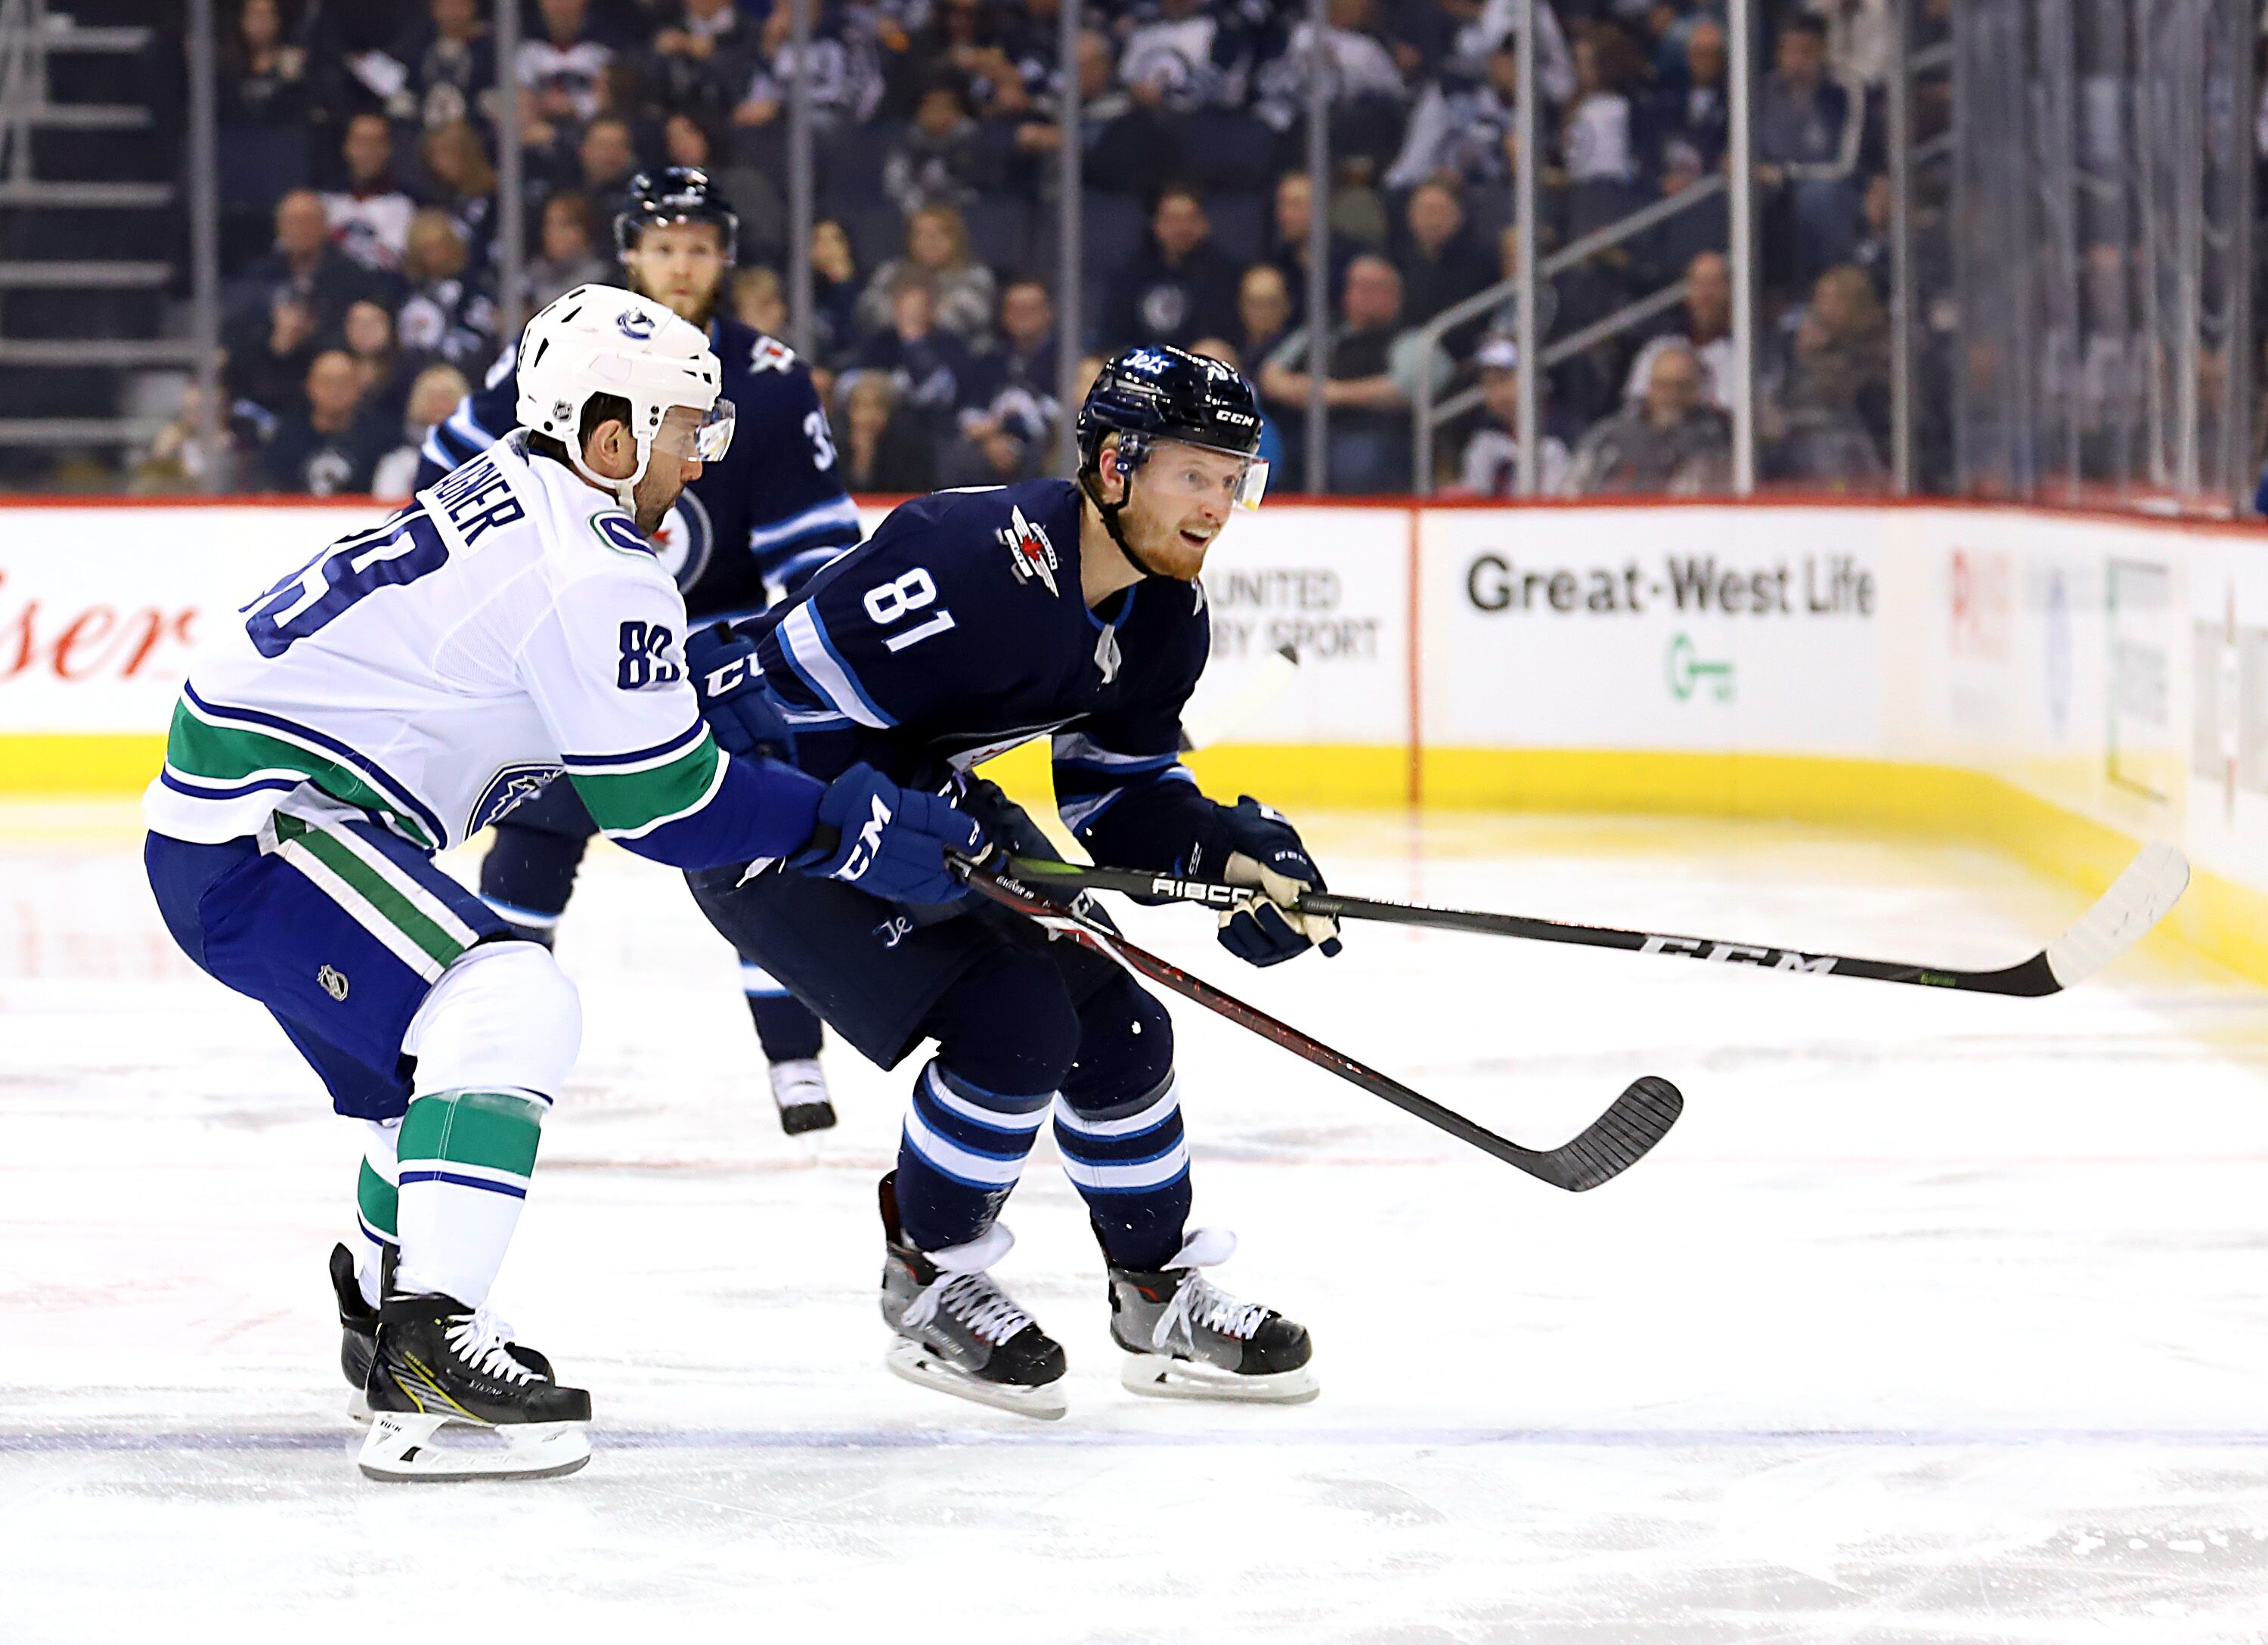 908580890-vancouver-canucks-v-winnipeg-jets.jpg